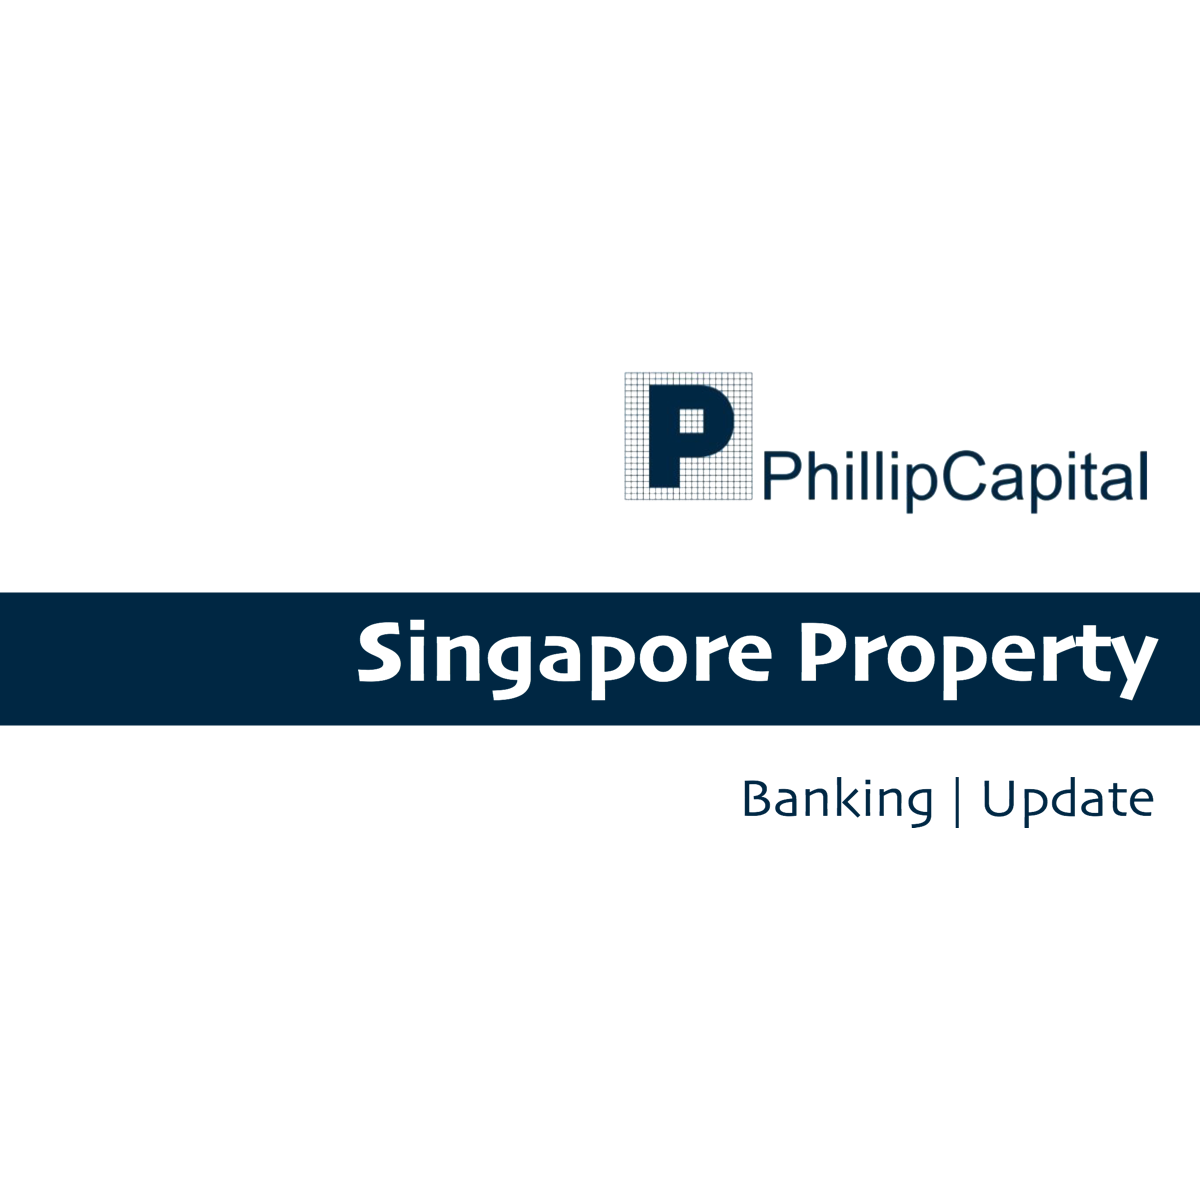 Singapore Property - Phillip Securities 2017-03-13: No significant boost expected from recent easing